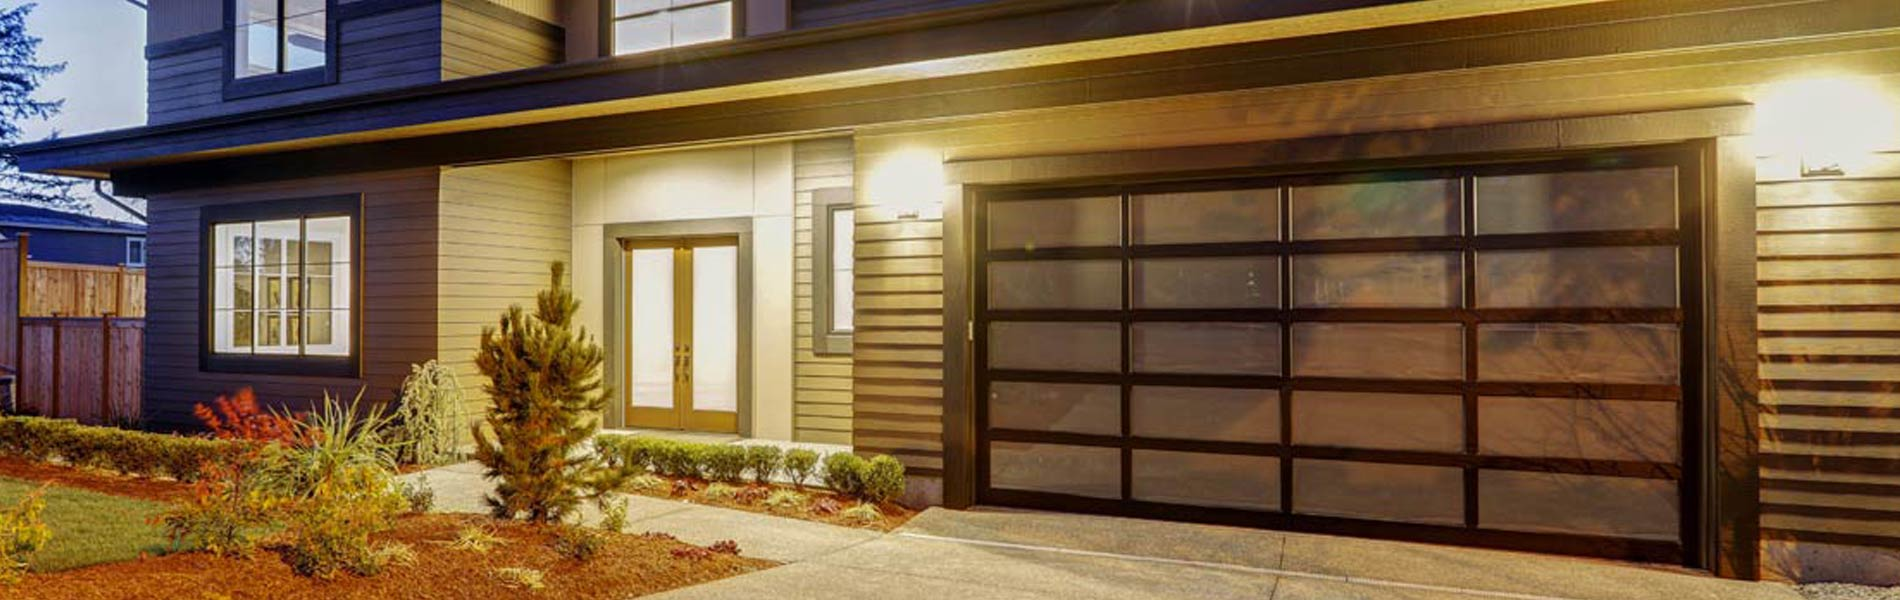 Garage Door And Opener Repairs, Chevy Chase, MD 301-327-1061